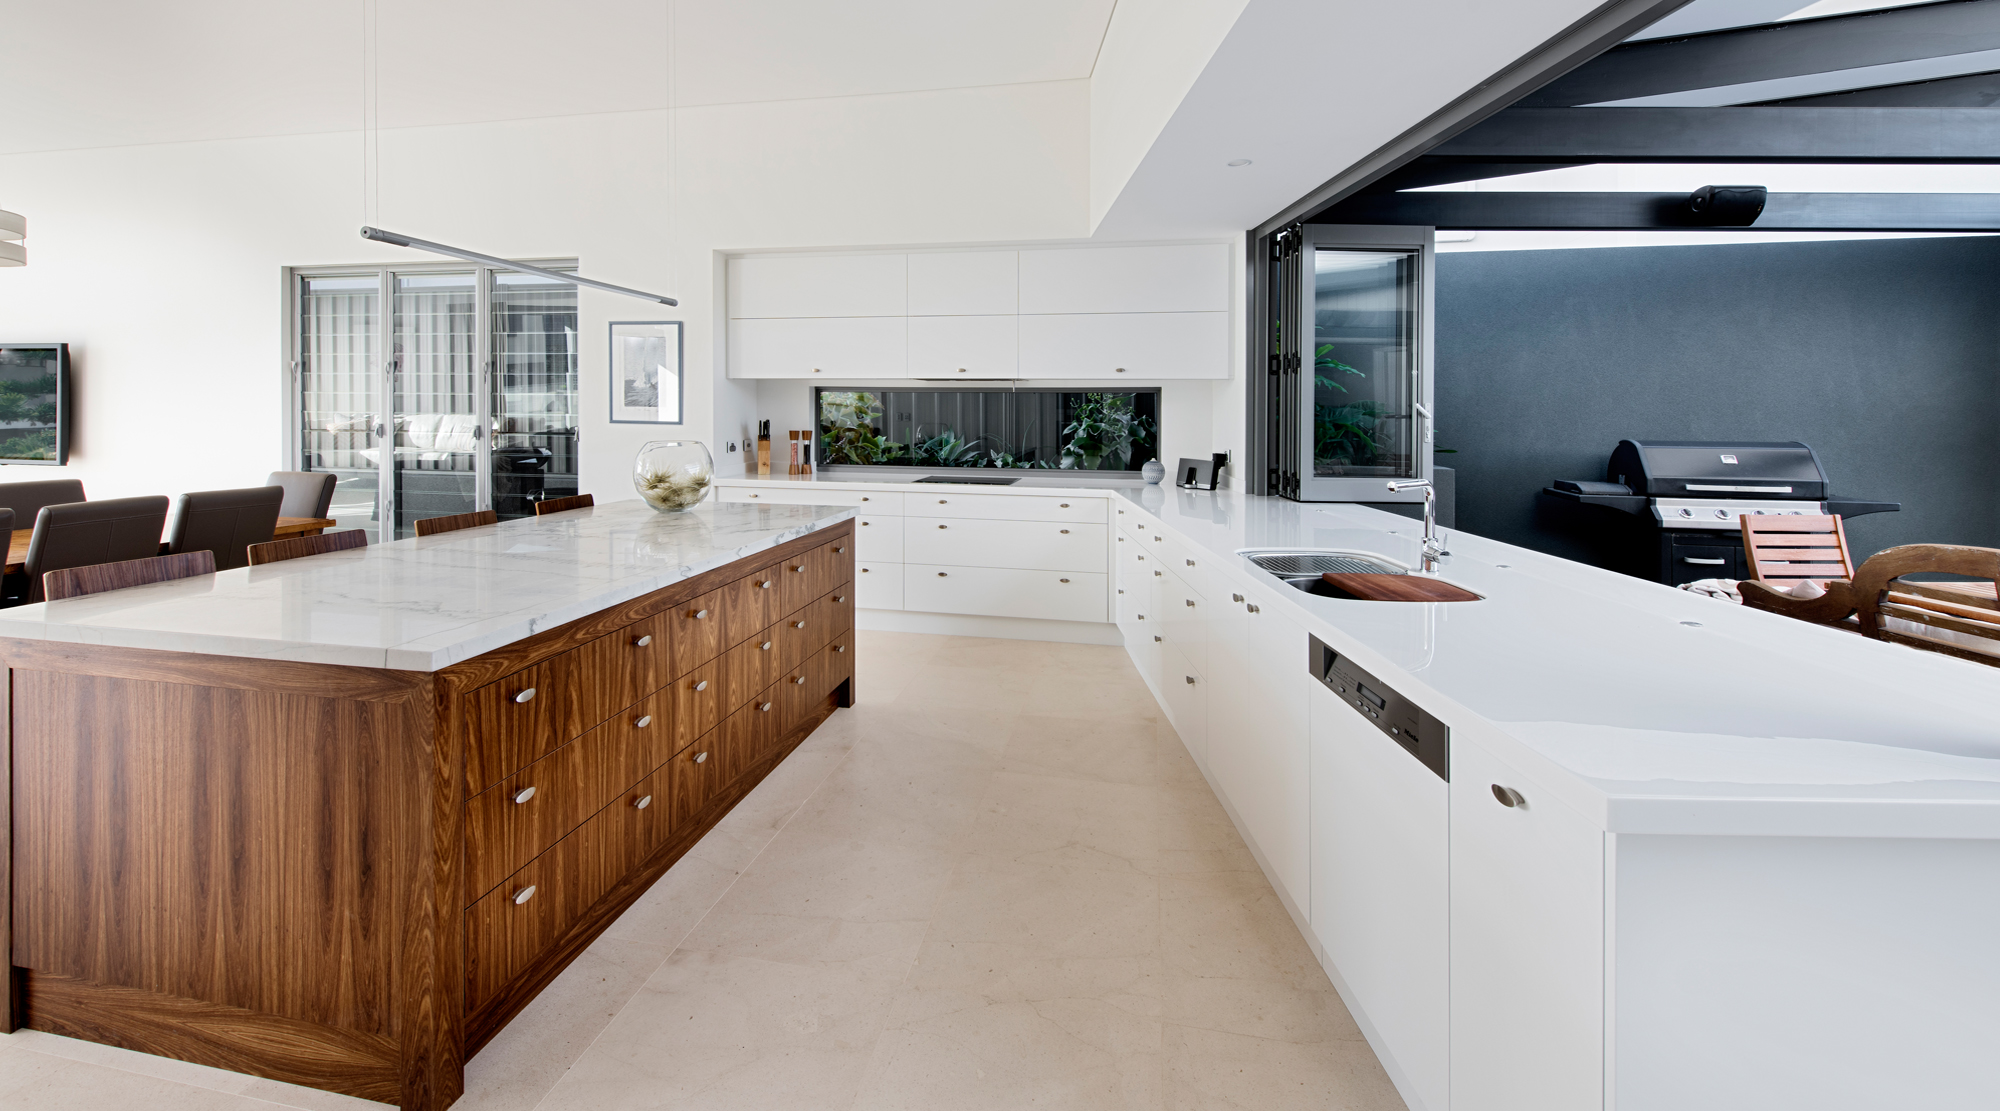 kitchen designs cabinet makers perth custom cabinets testimonials kitchen cabinets perth cabinet makers